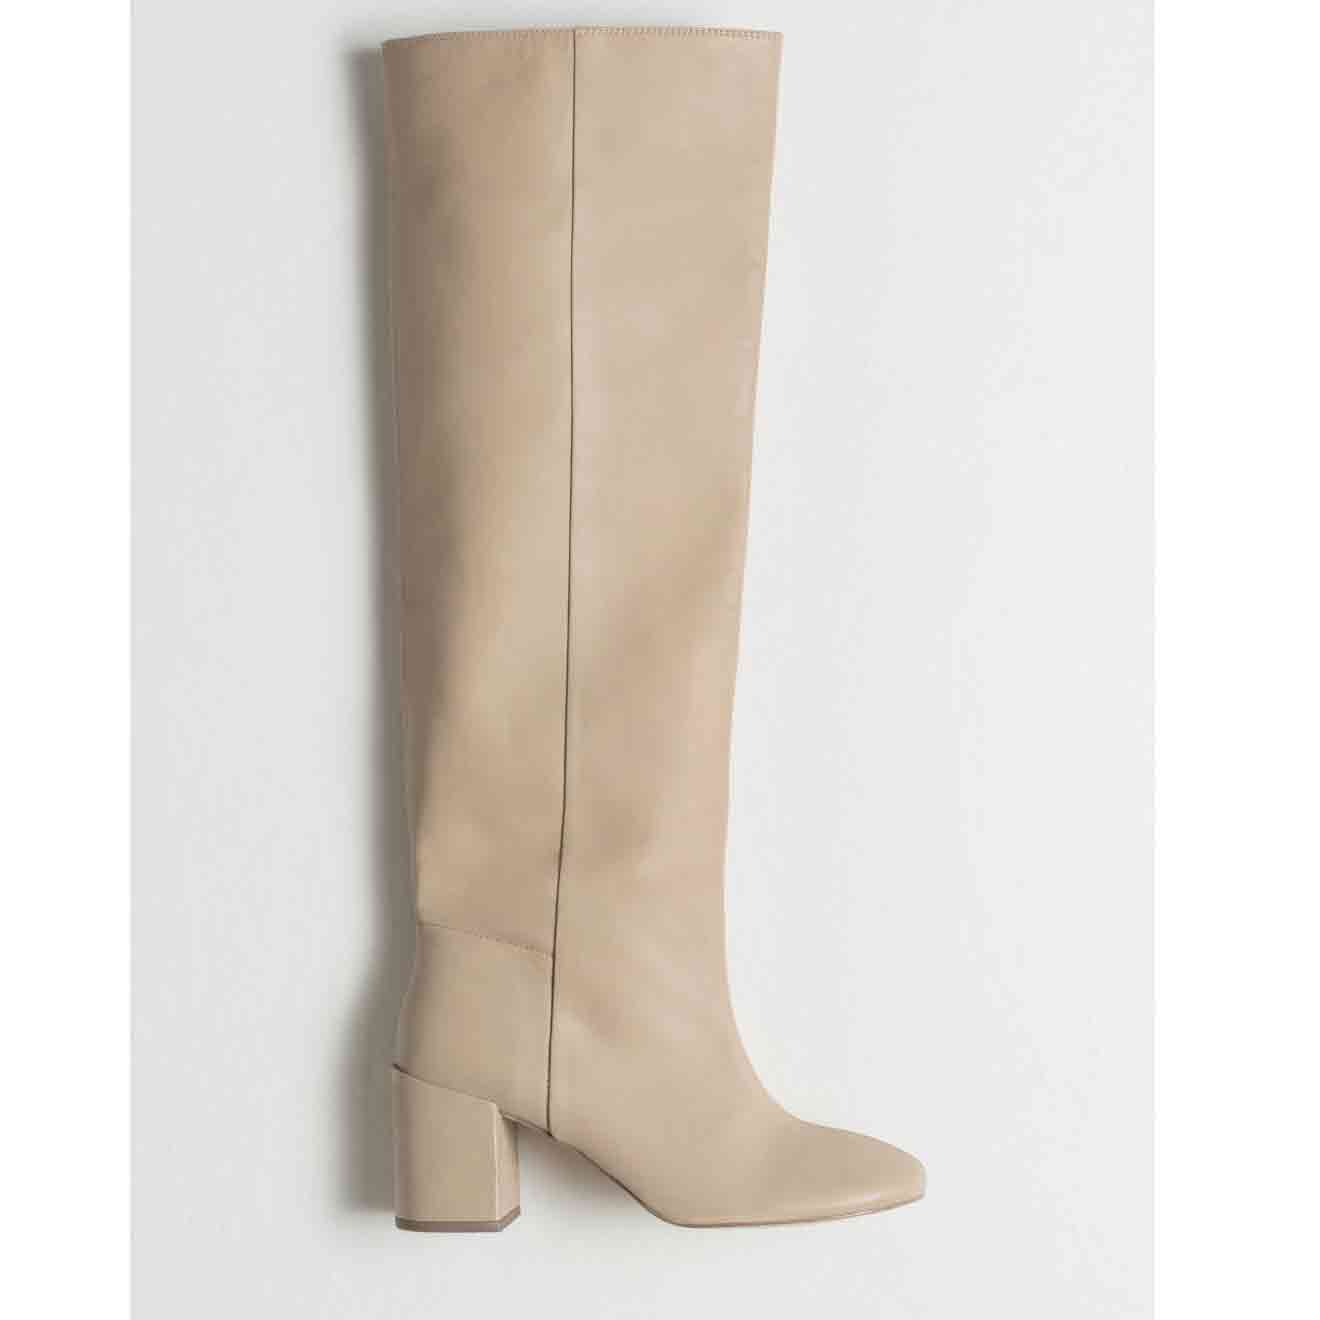 & OTHER STORIES Knee High Leather Boots  £199